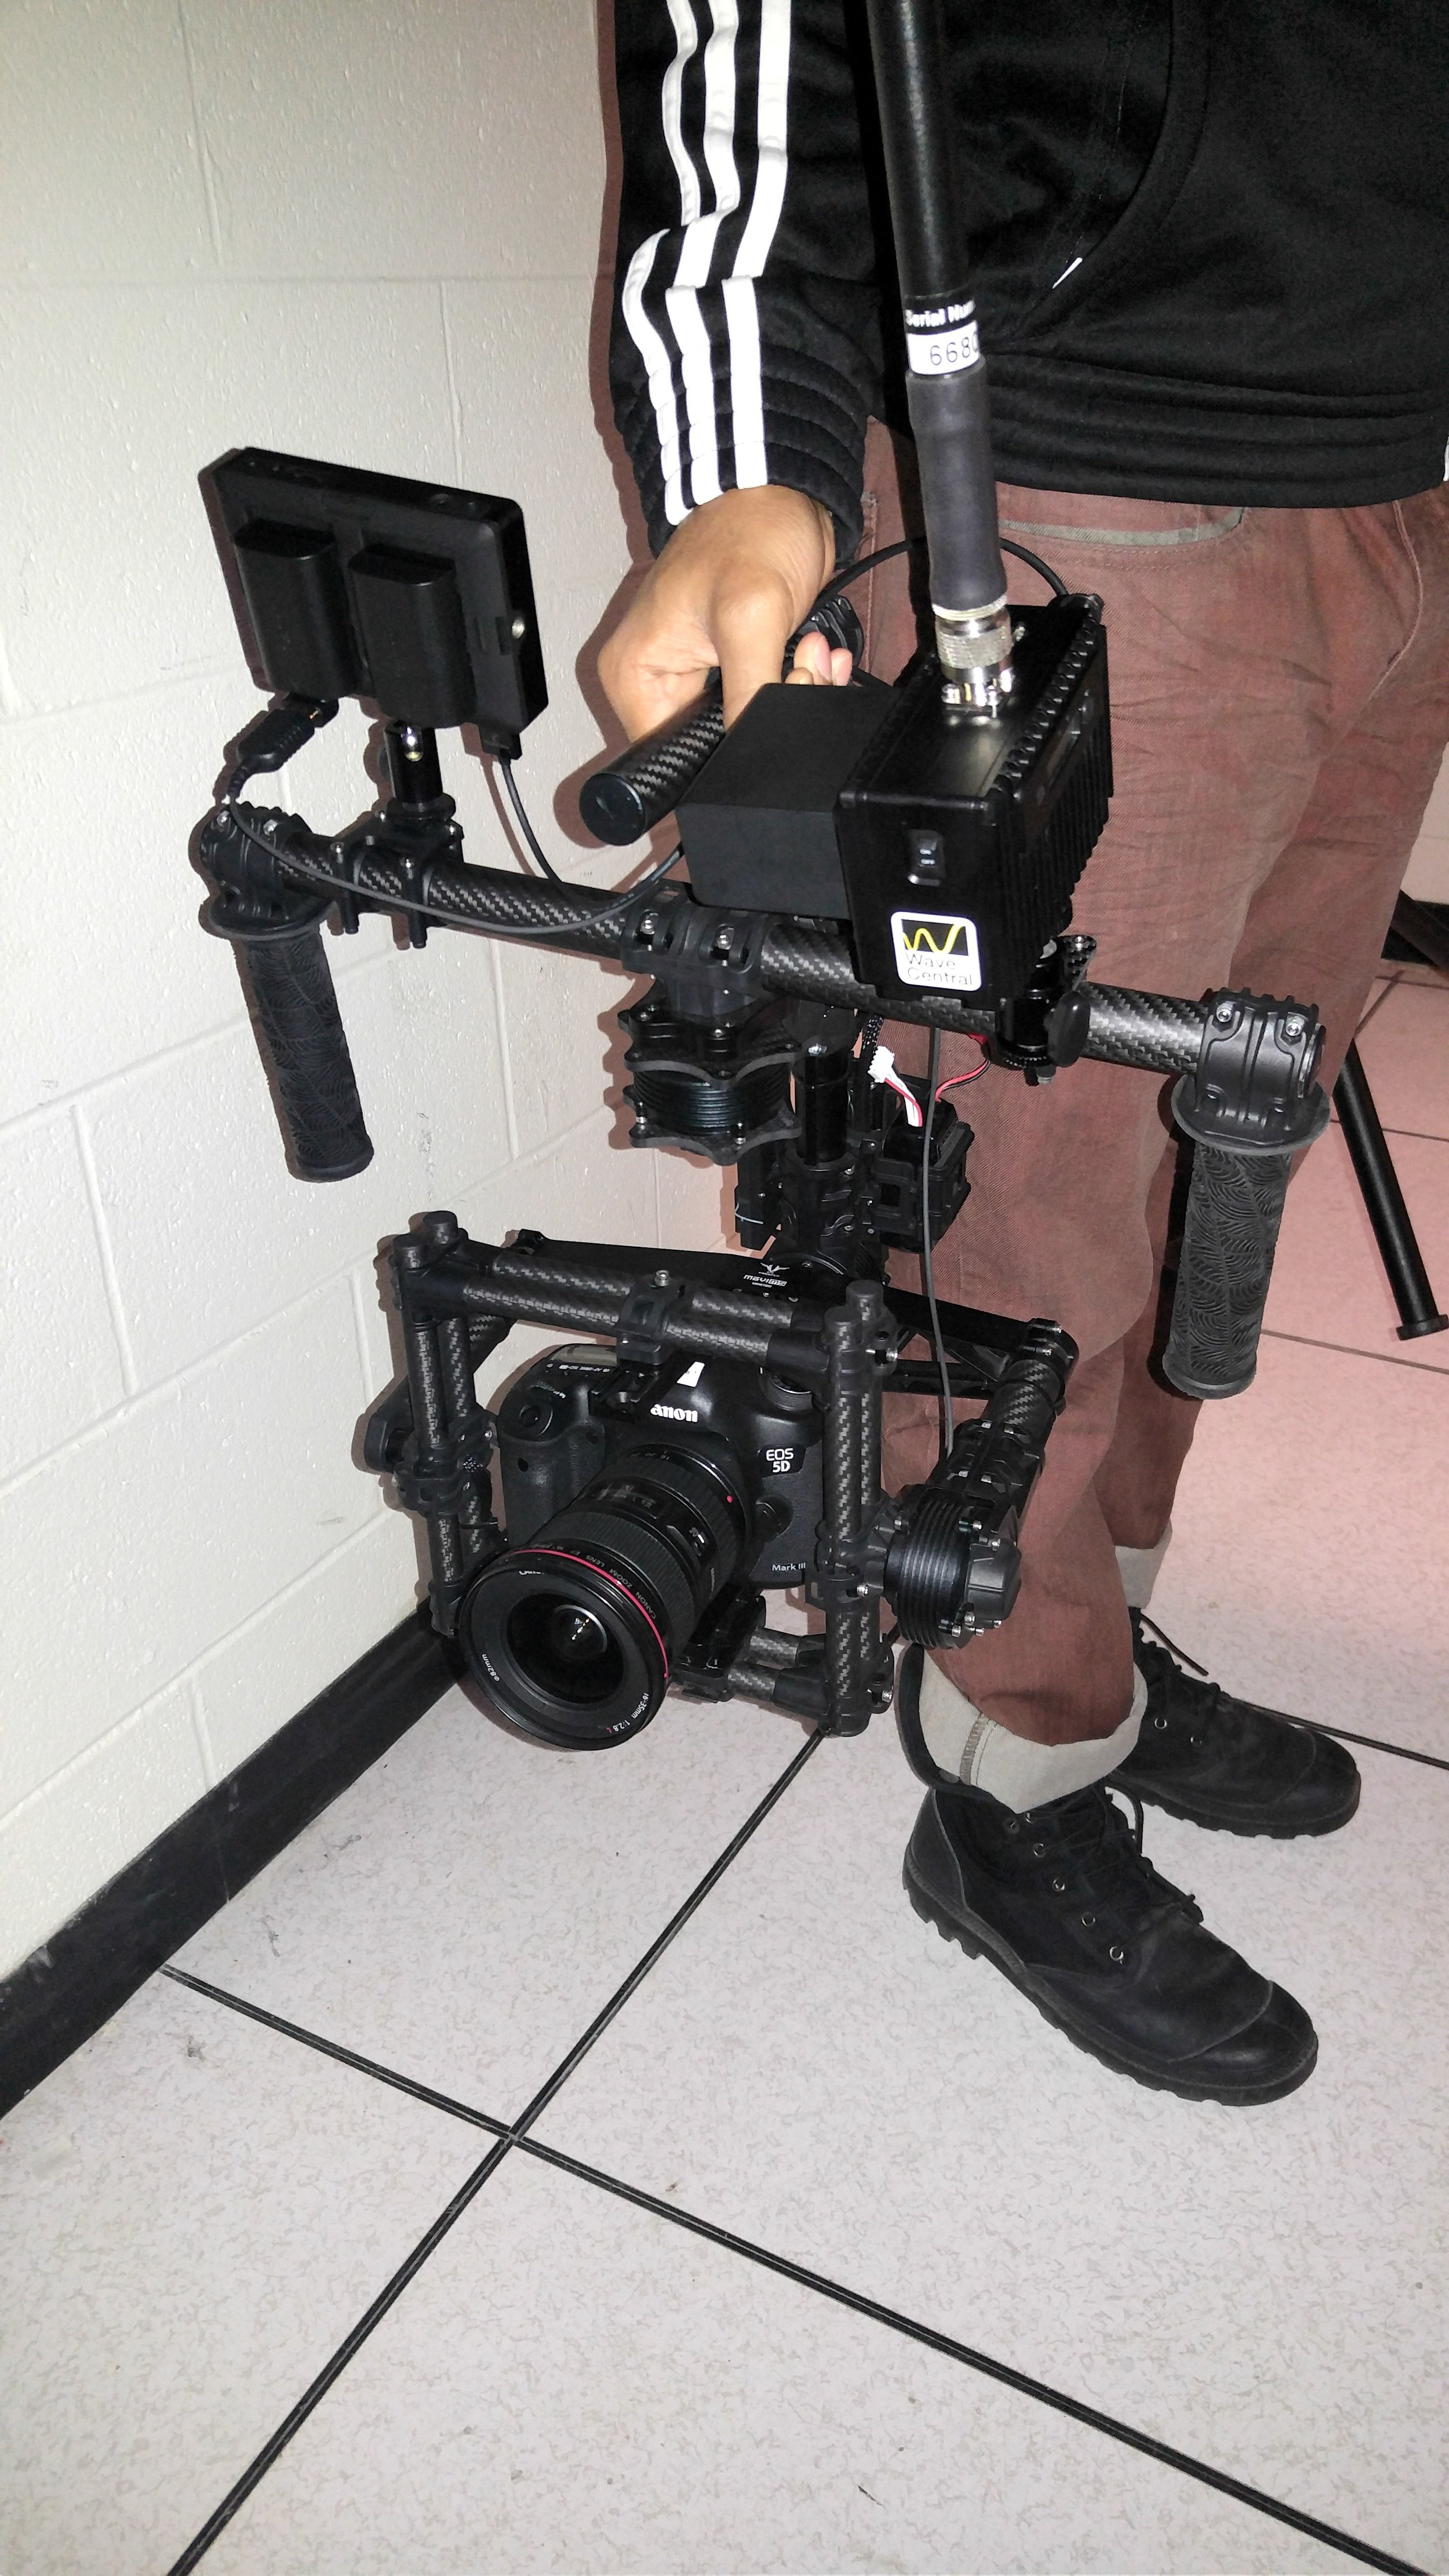 Spurs Sports & Entertainment - Movi Camera Rig with WC 5.8G Mini TX.jpg